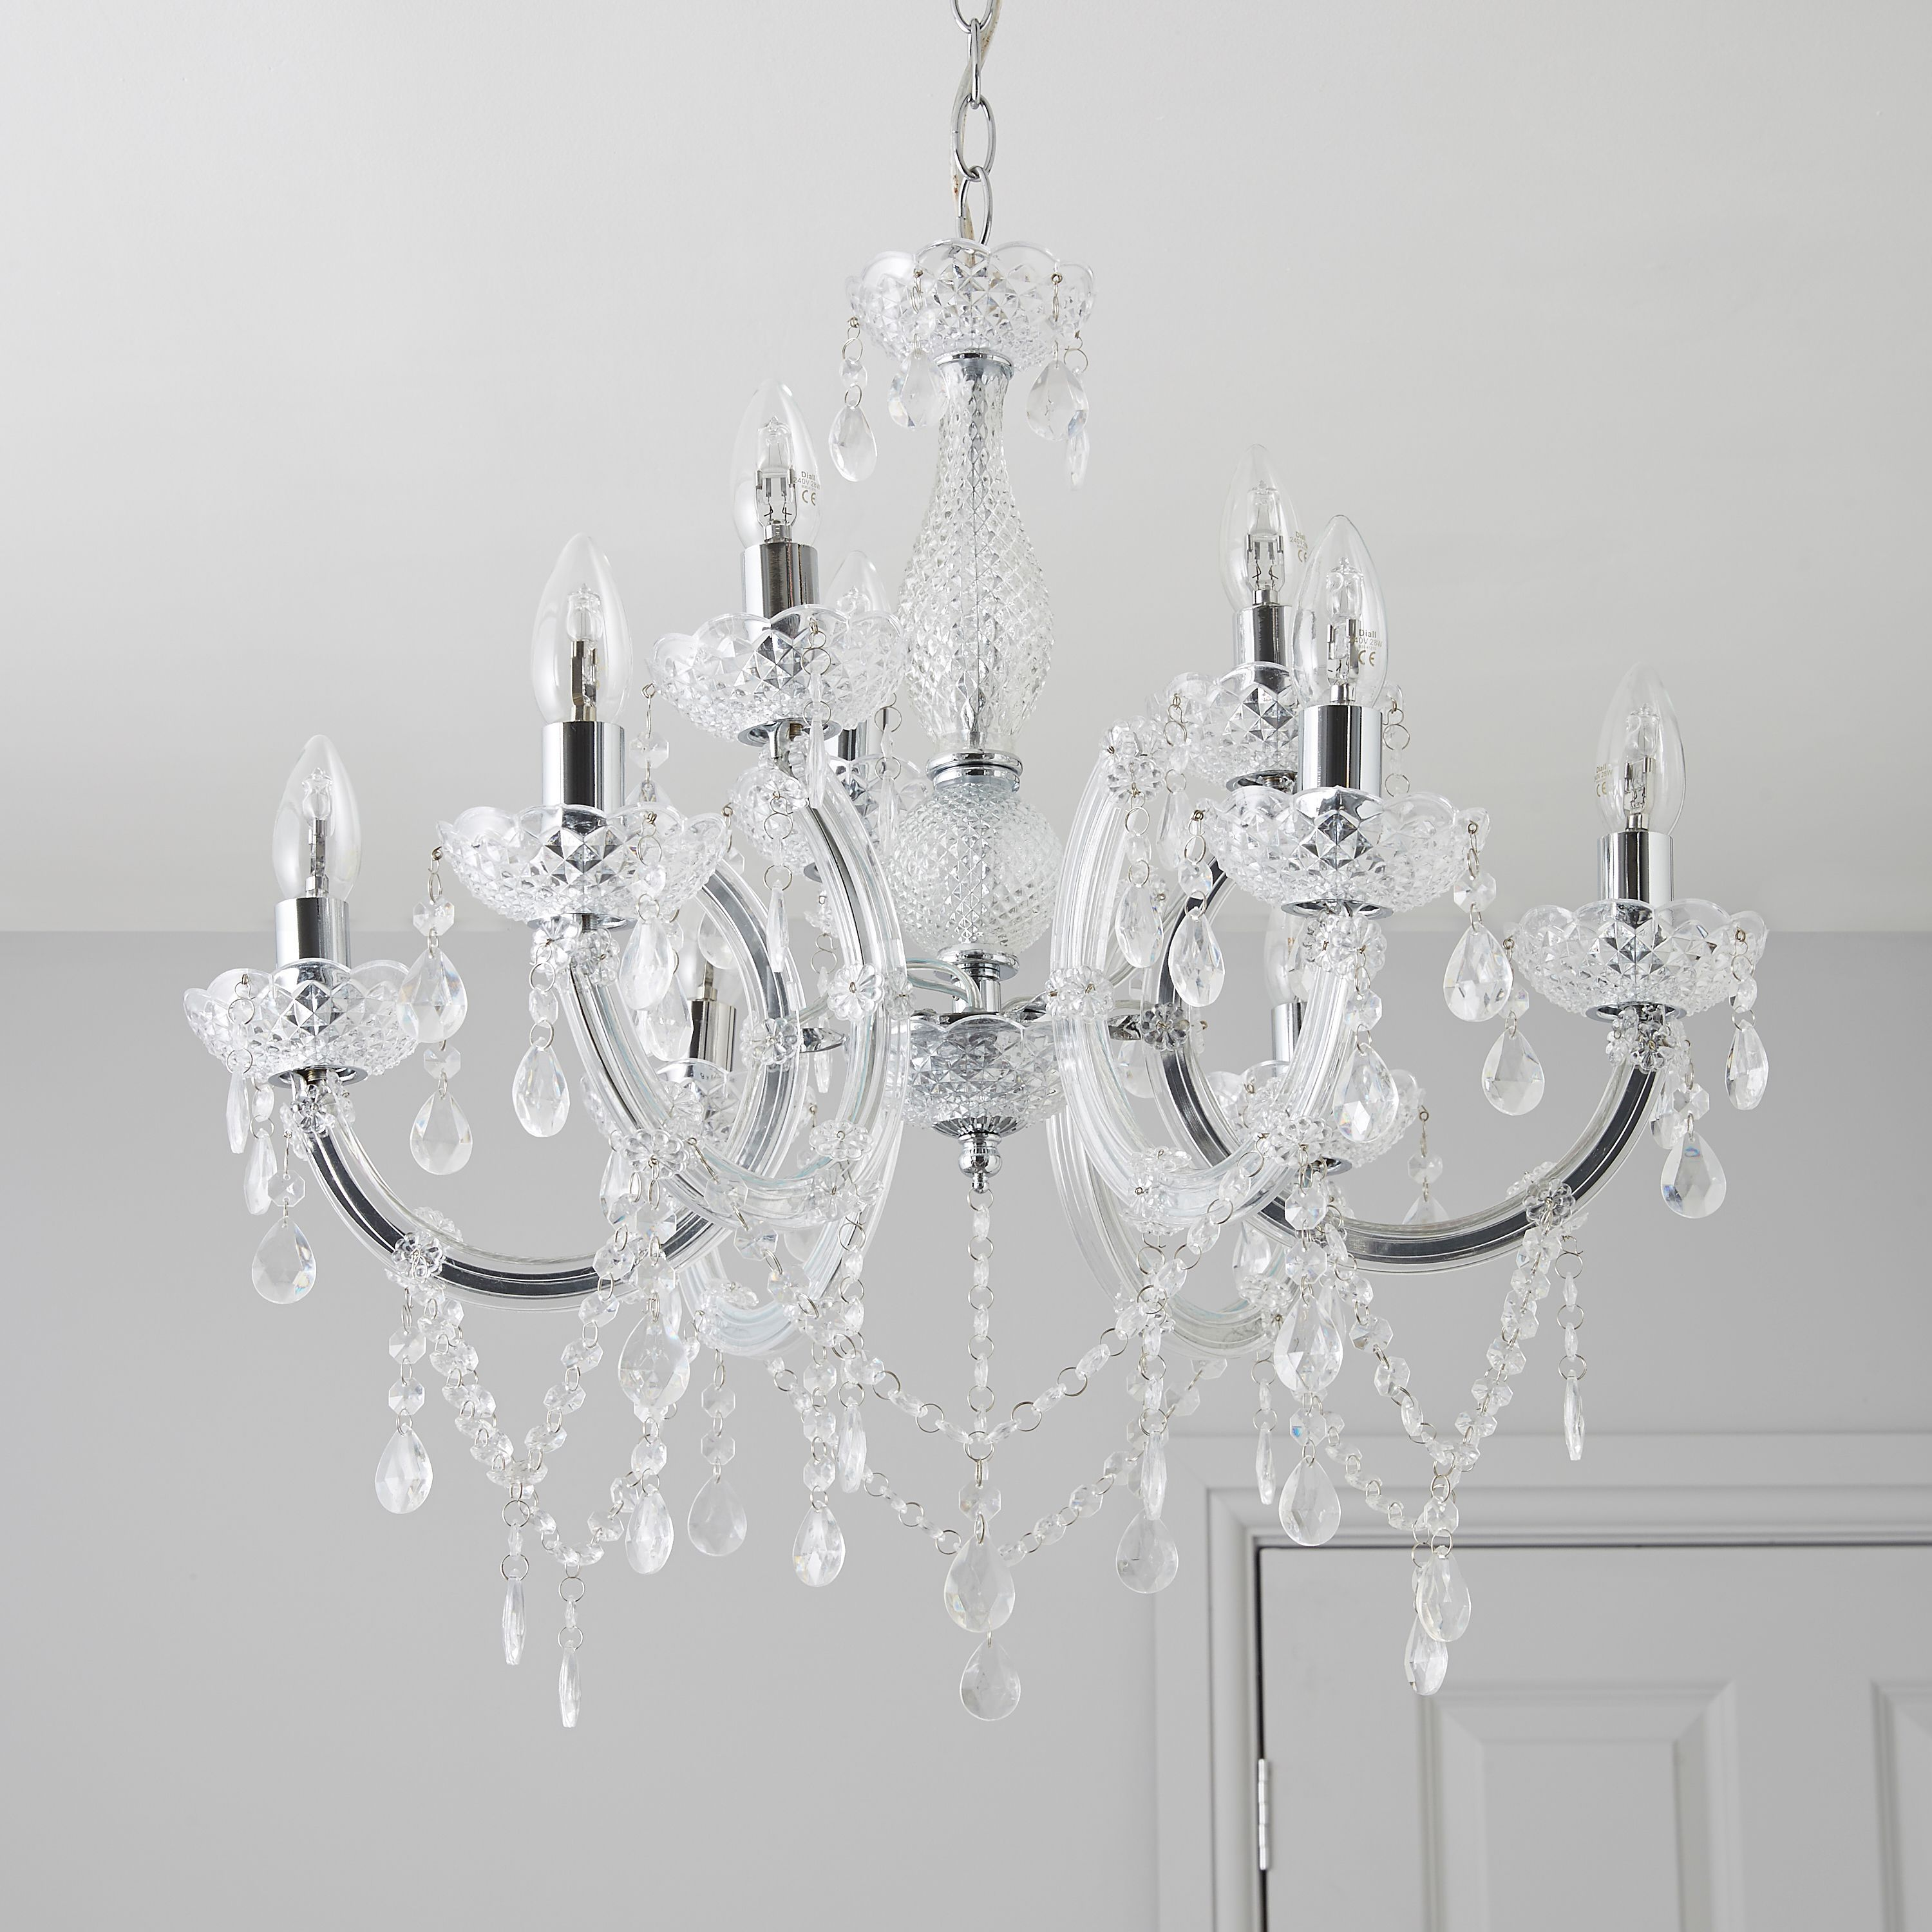 Annelise Crystal Droplets Silver 9 Lamp Pendant Ceiling Light